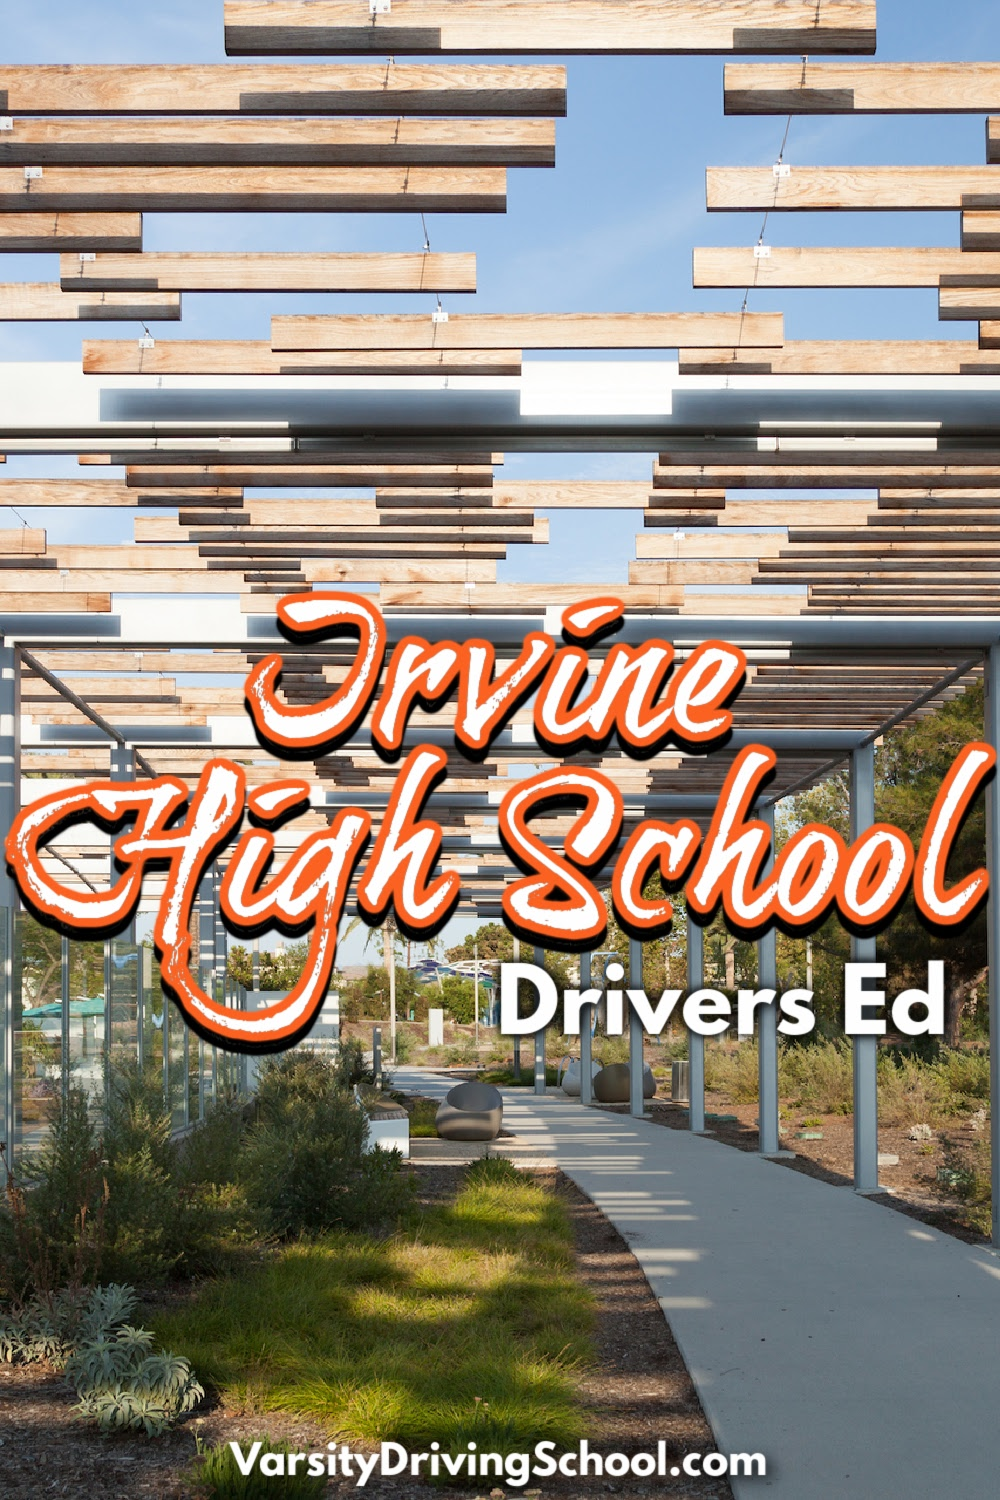 Welcome to Varsity Driving Academy, your #1 rated Irvine High School Driver's Ed.